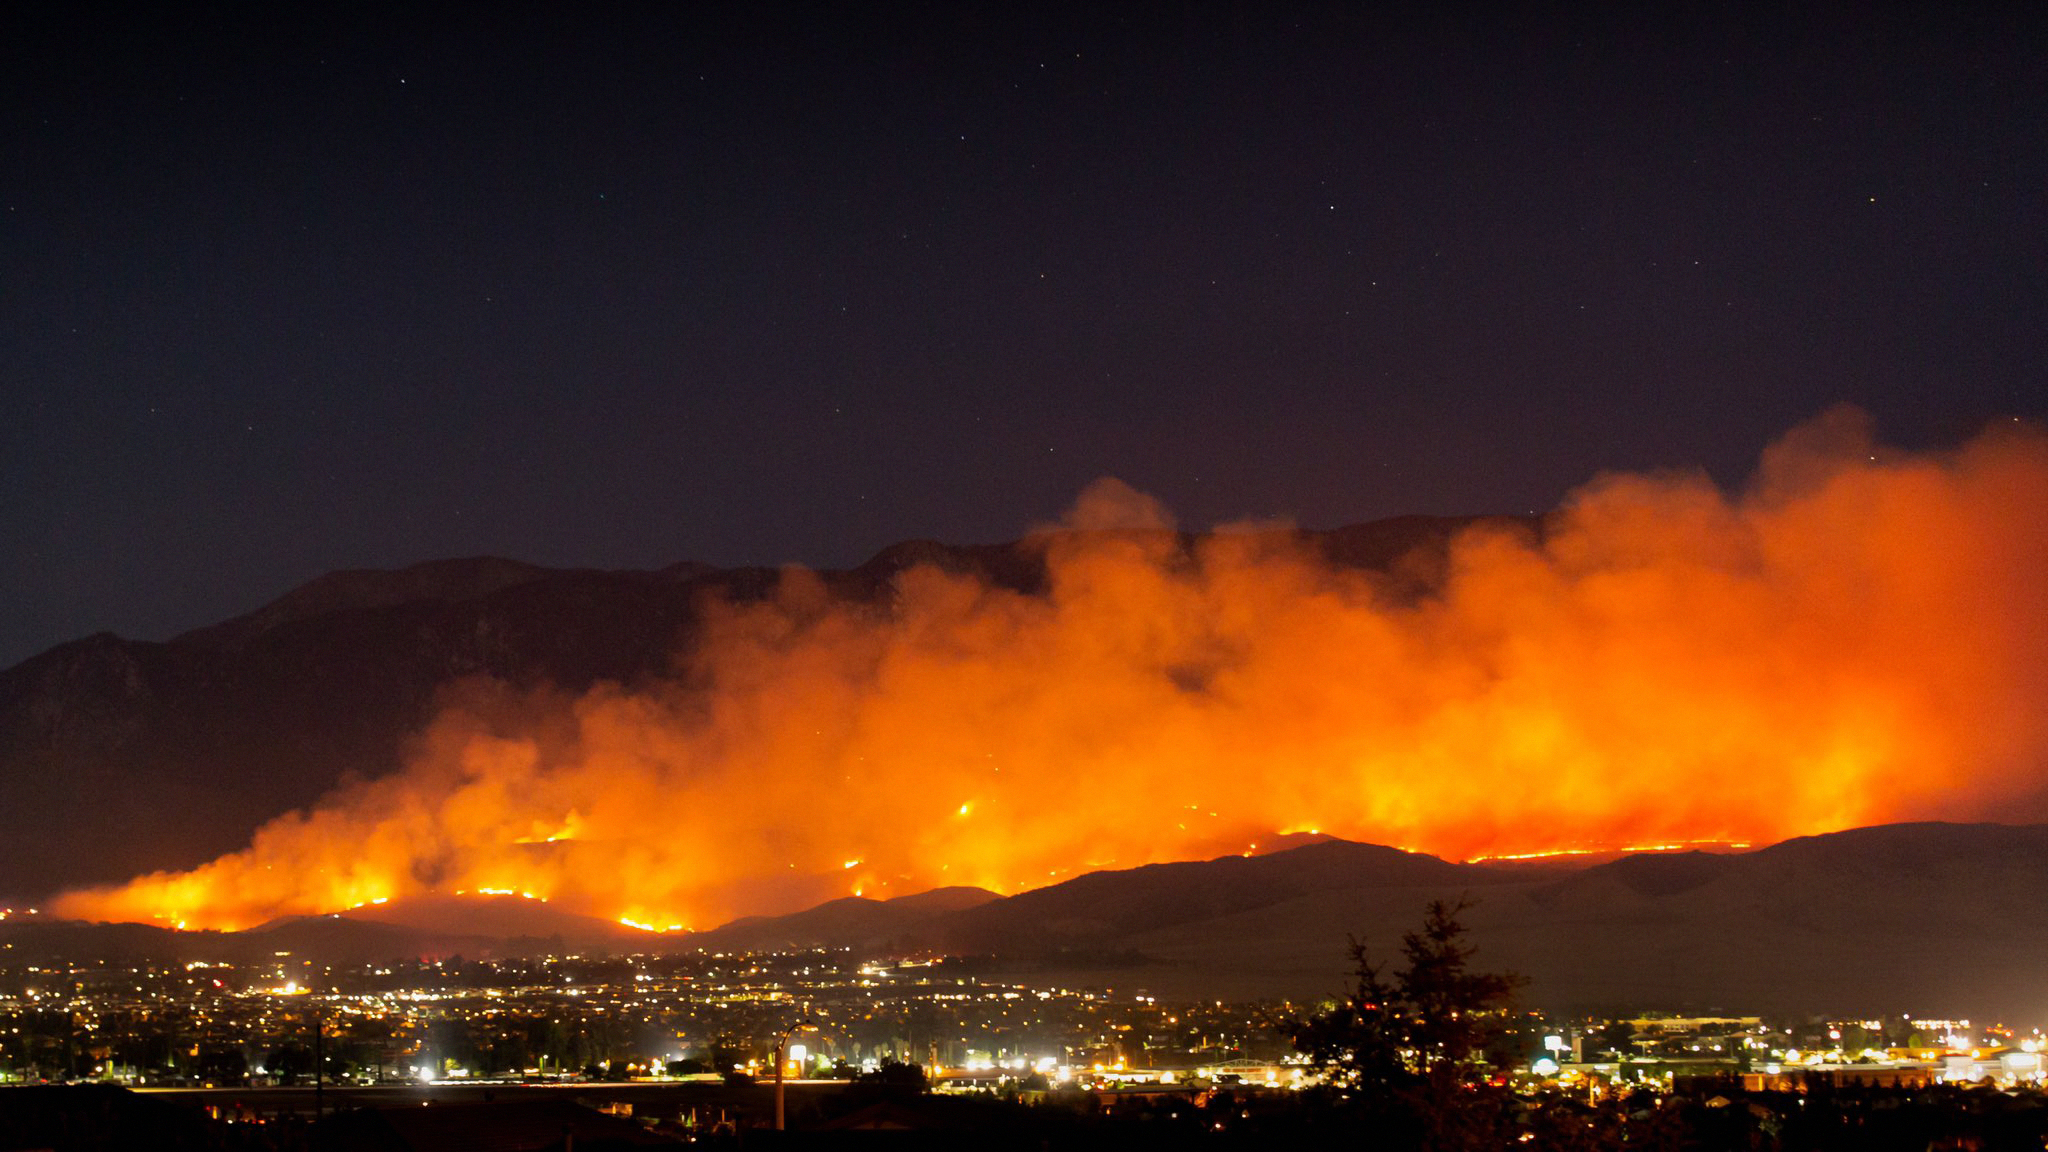 File:The Apple Fire burns north of Beaumont, Friday, July 31, 2020.jpg -  Wikimedia Commons